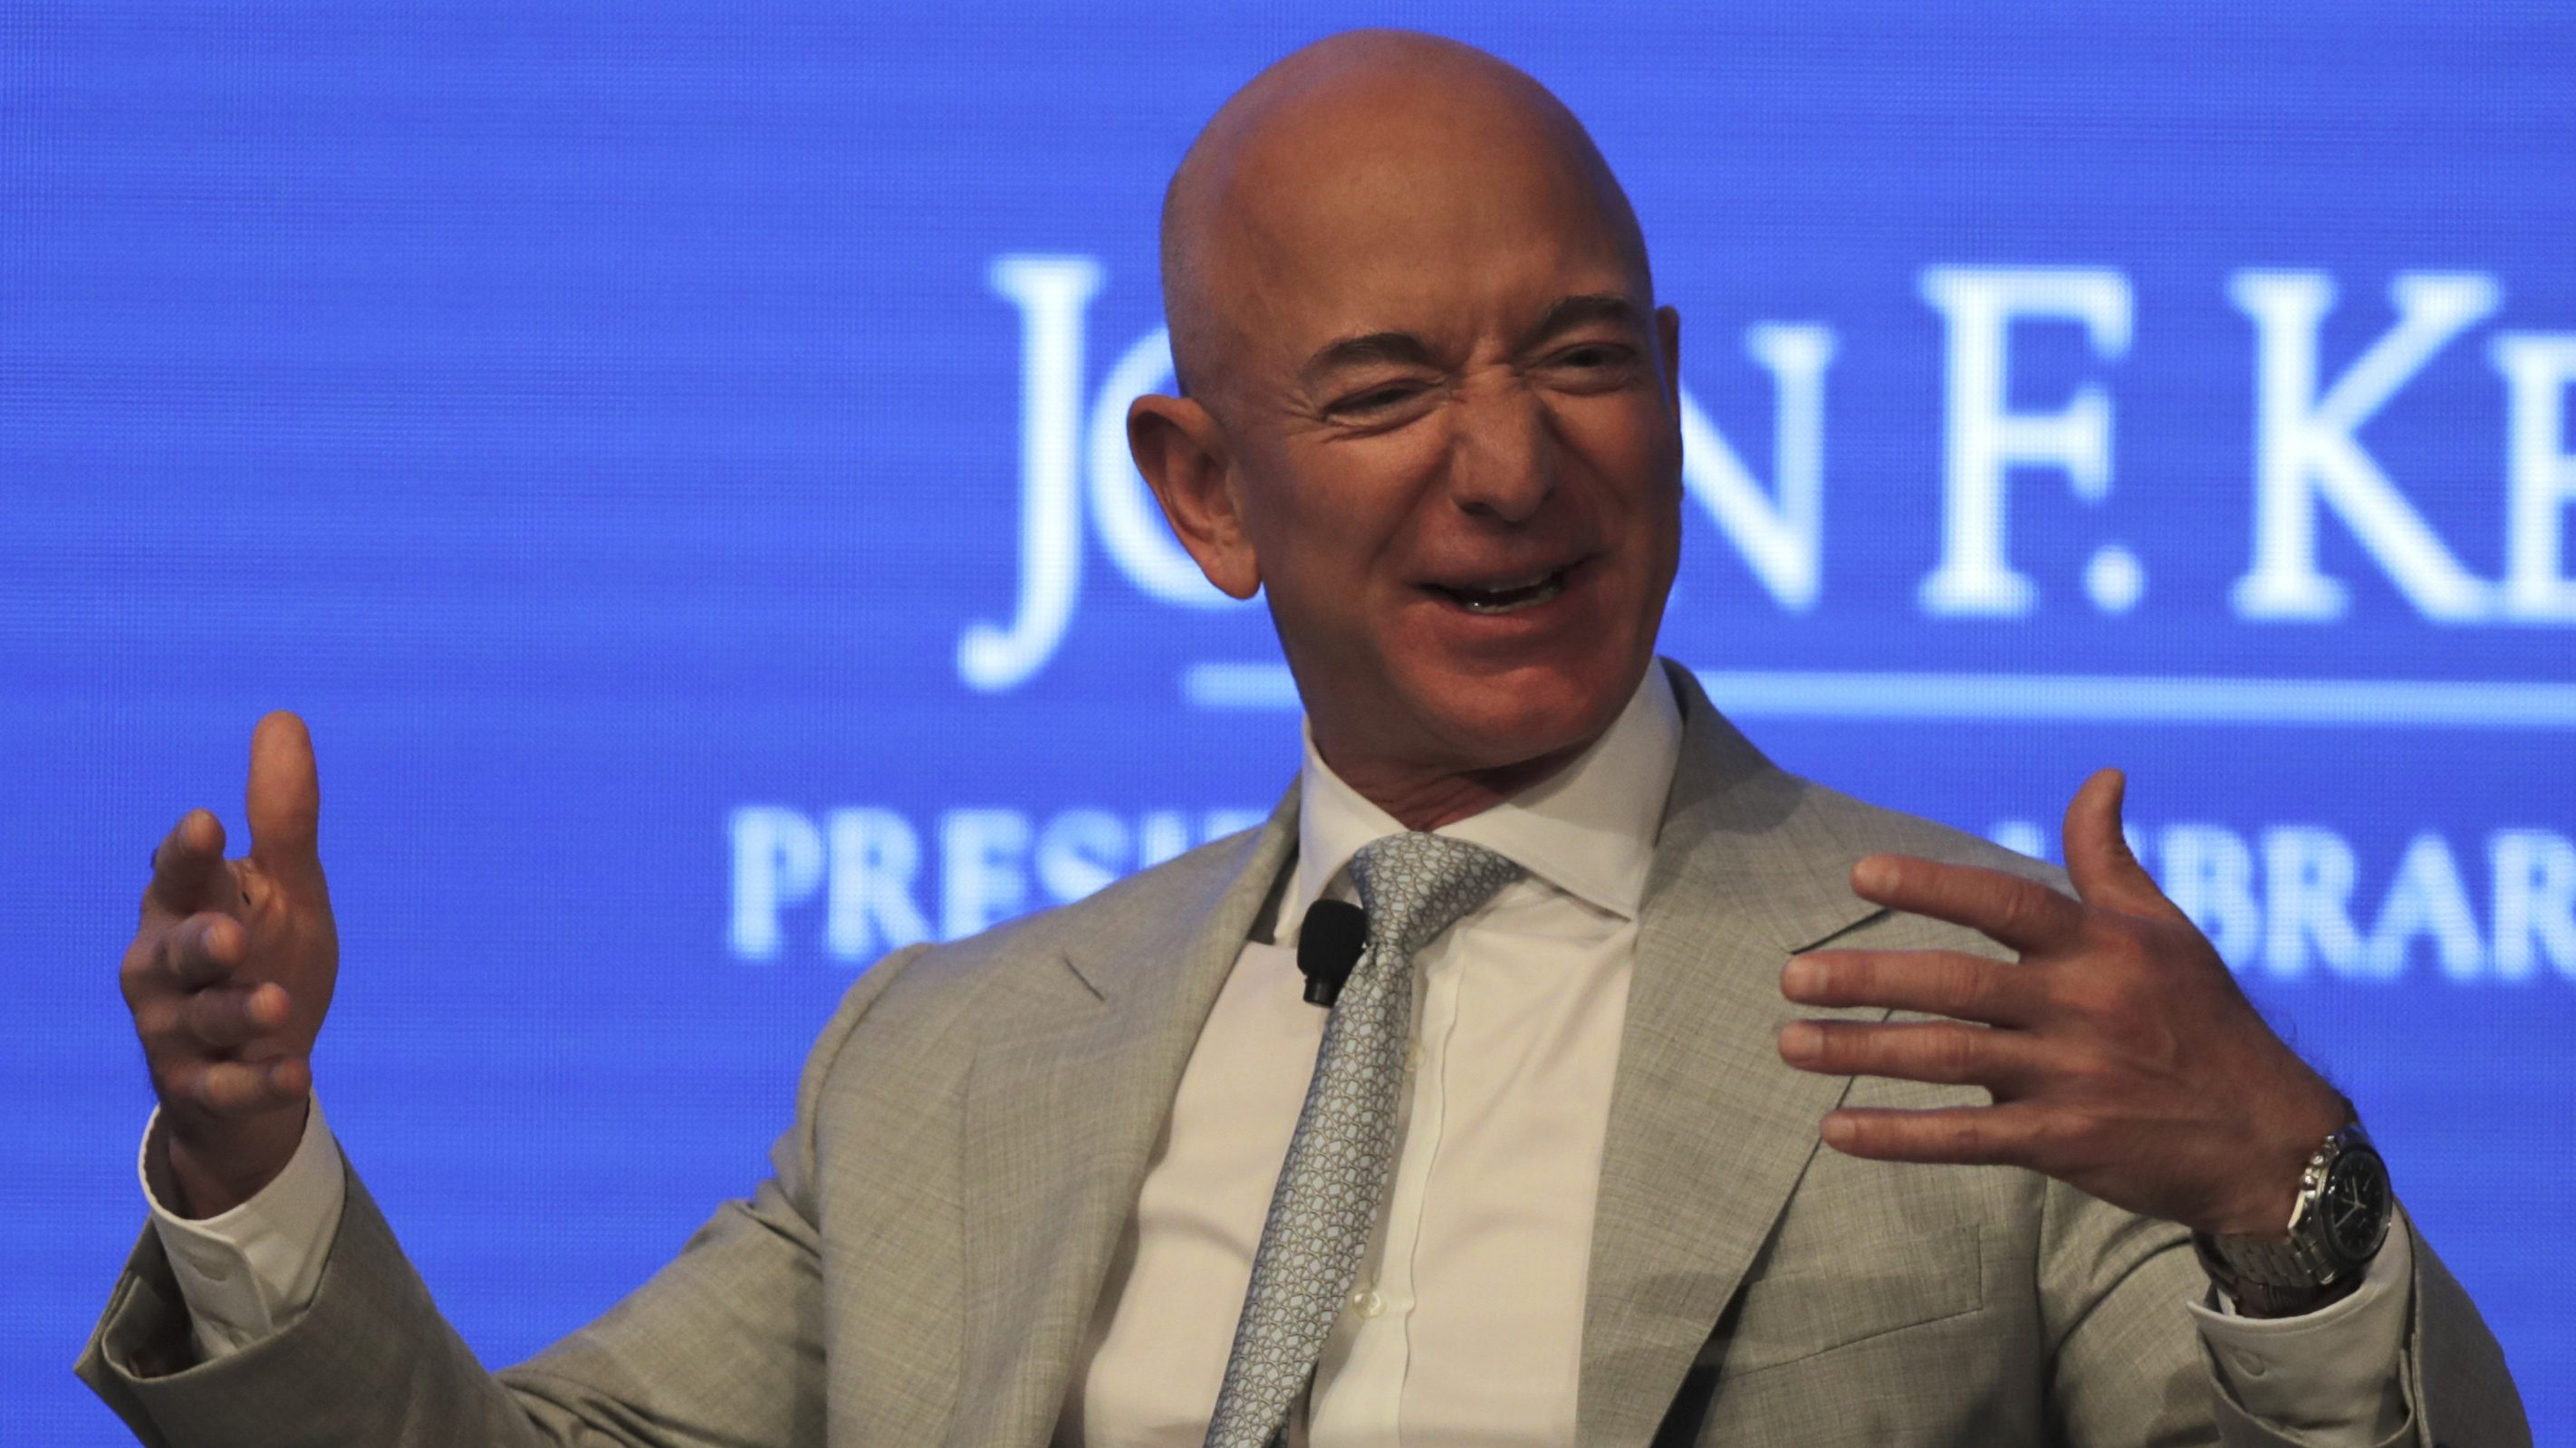 Jeff Bezos looking particularly happy at a conference